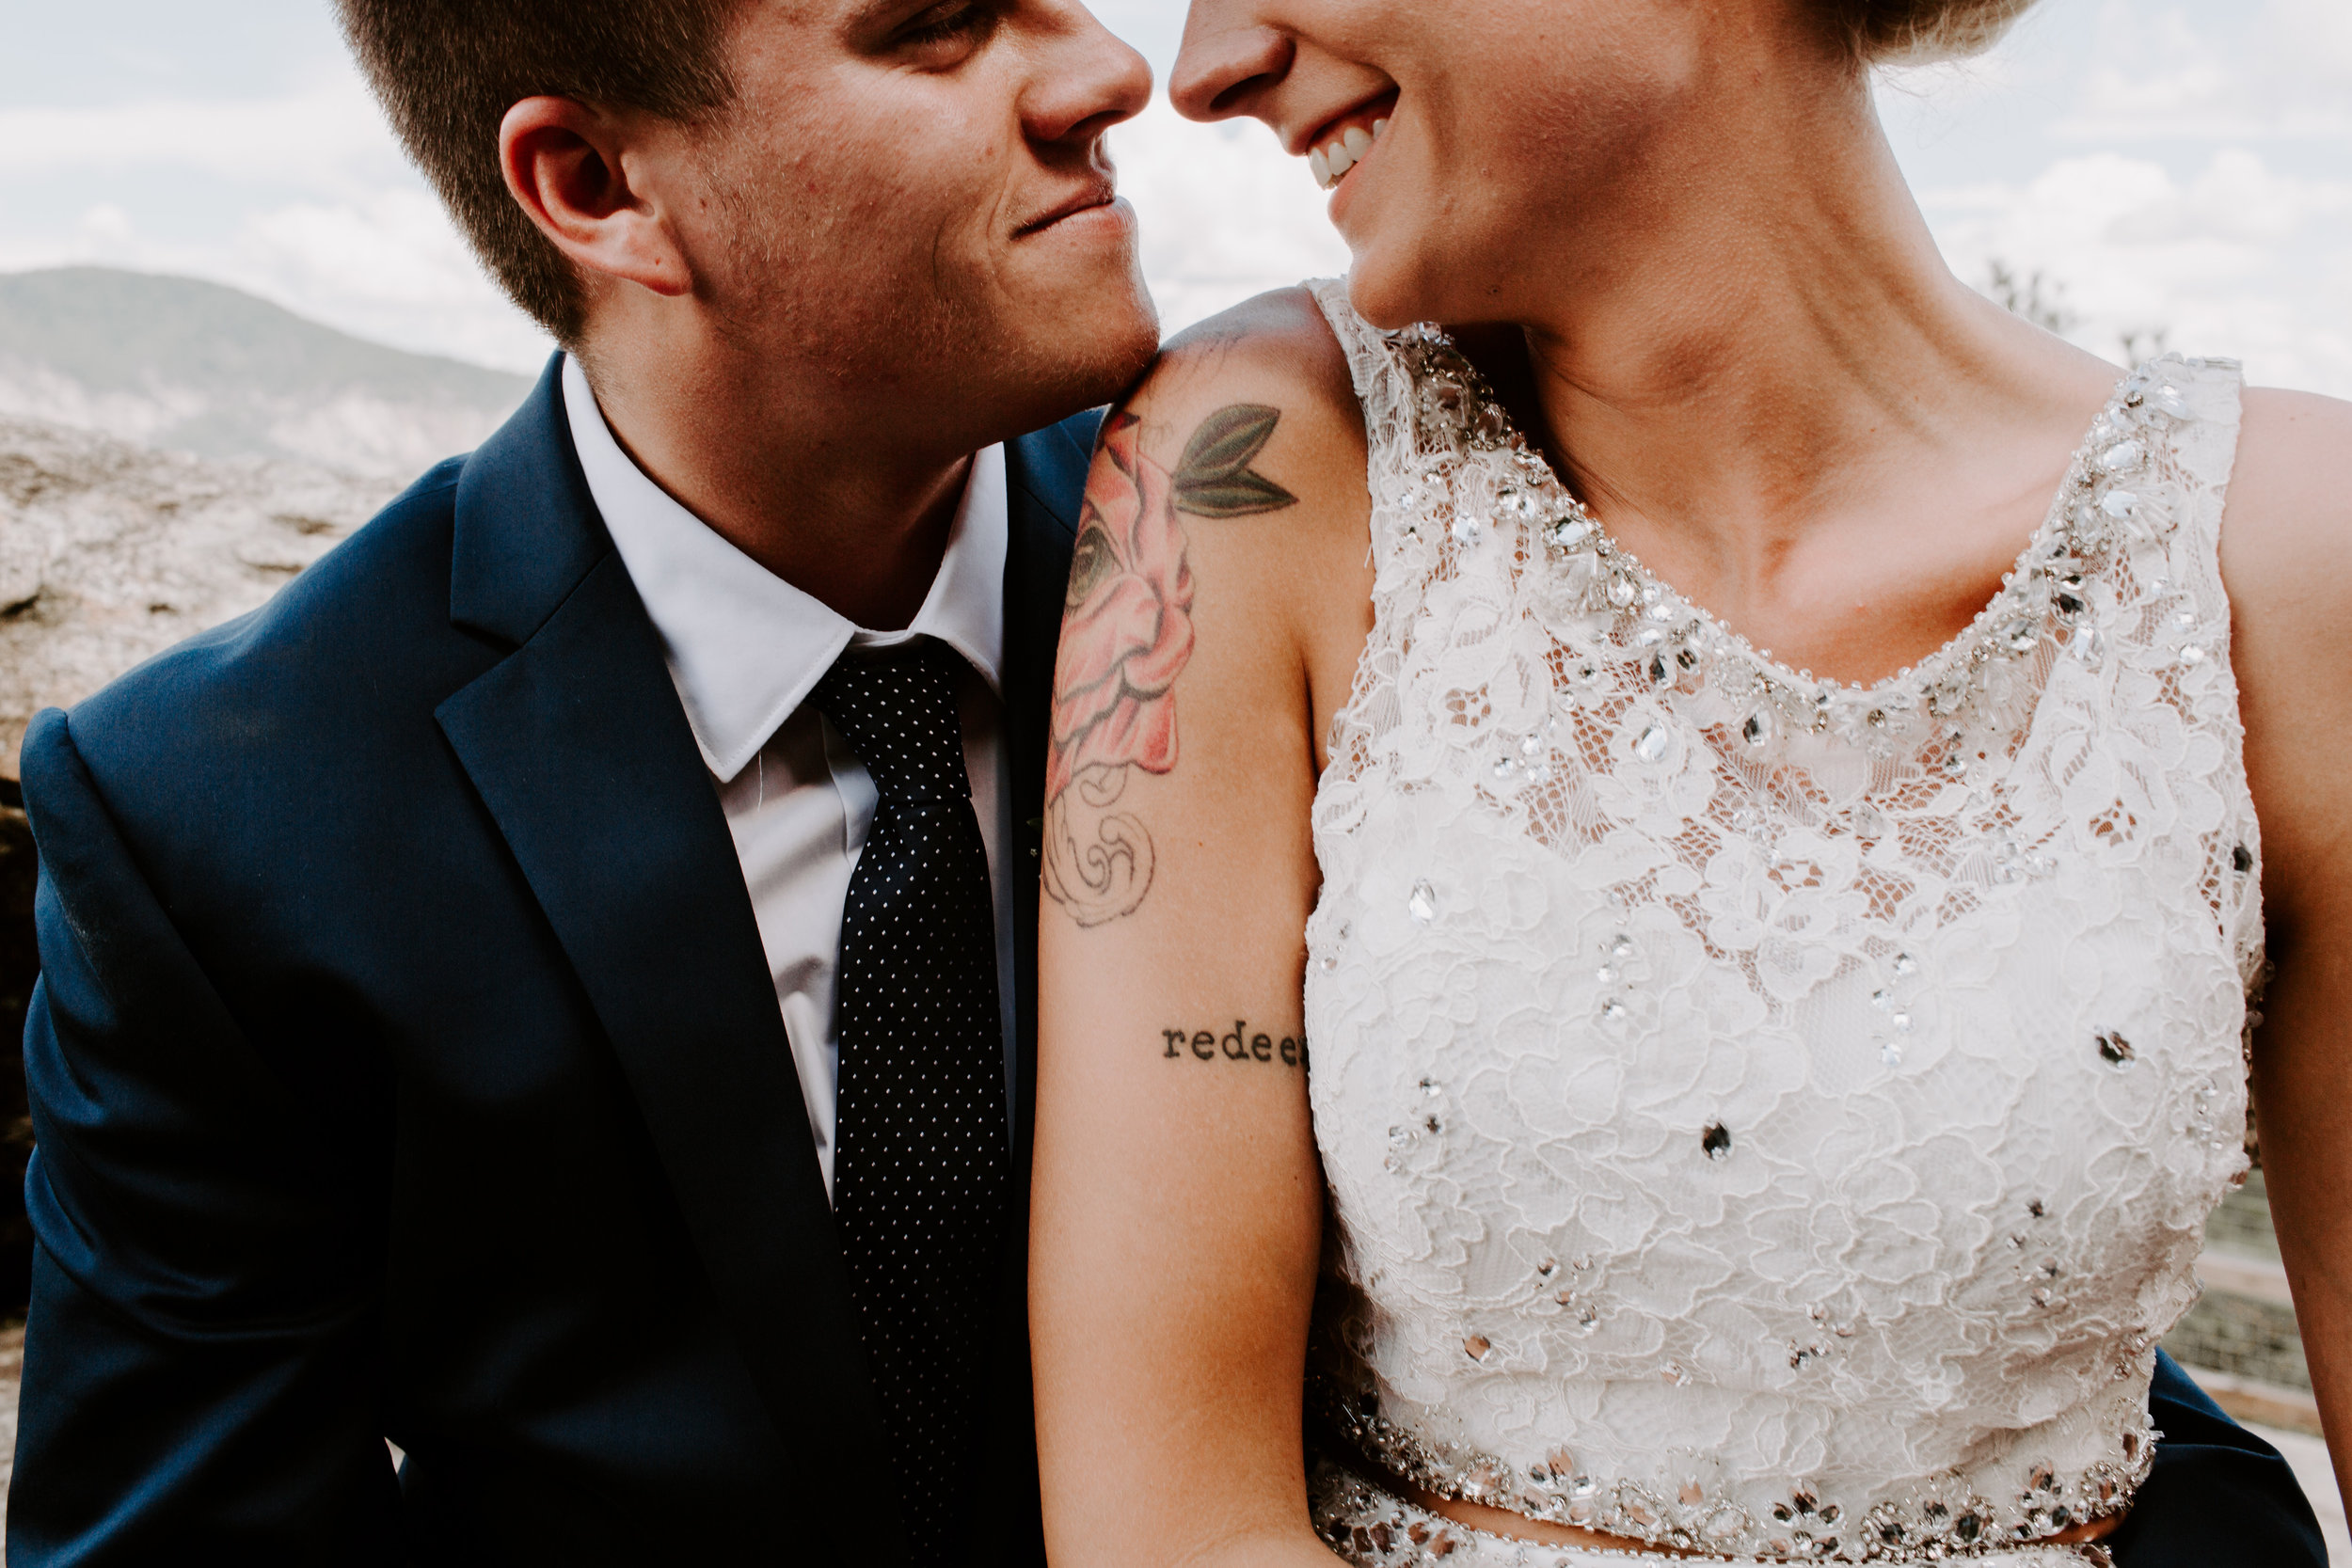 Miranda&braedon_ashevilleelopement (44 of 101).jpg